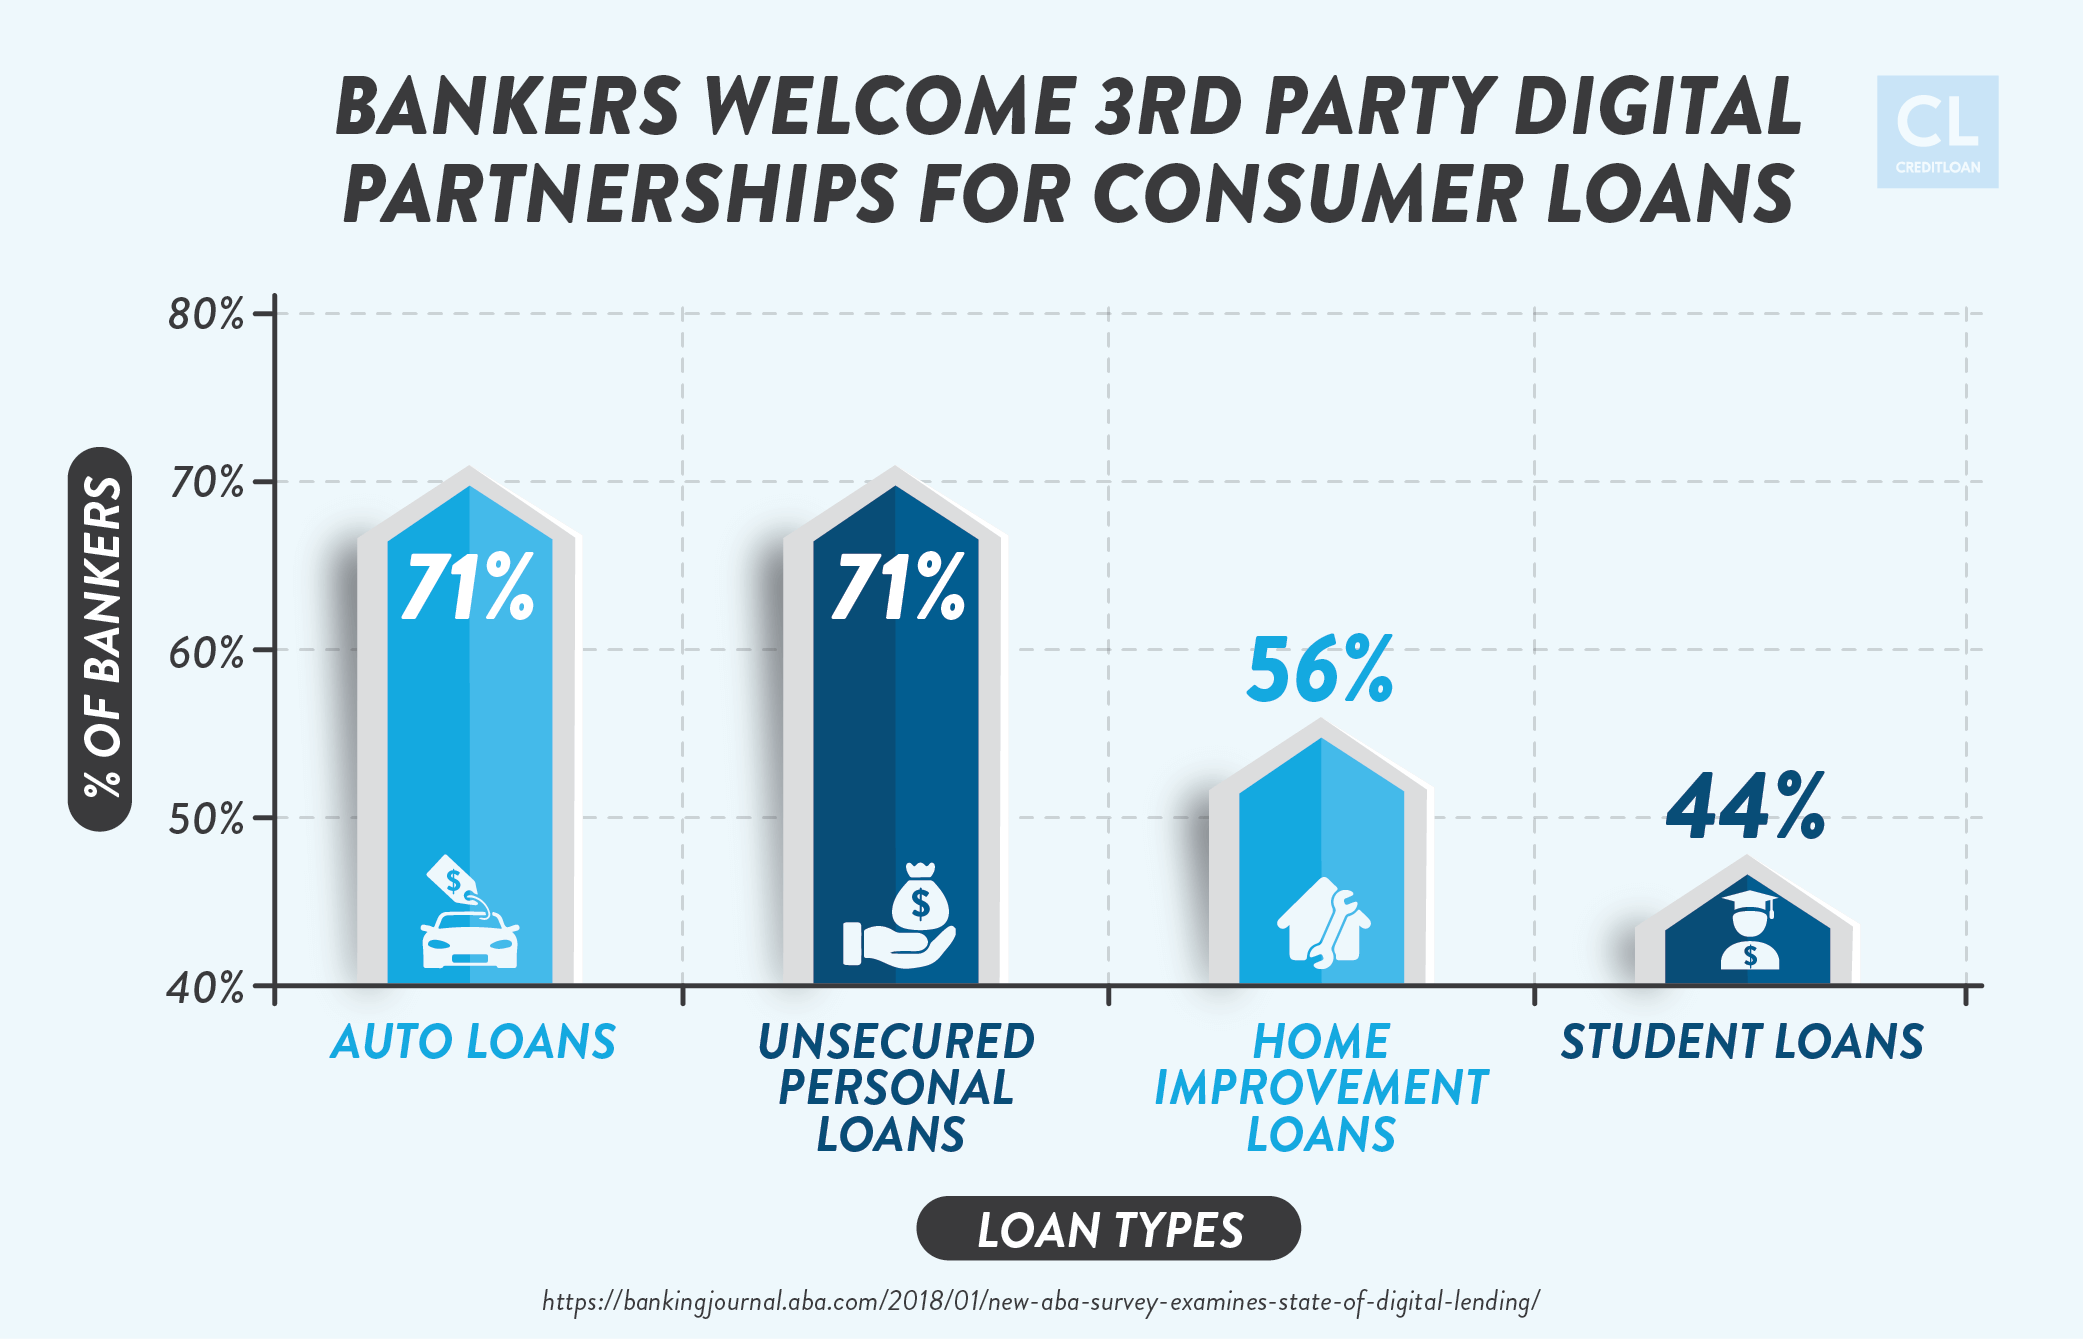 Bankers Welcome 3rd Party Digital Partnerships for Consumer Loans